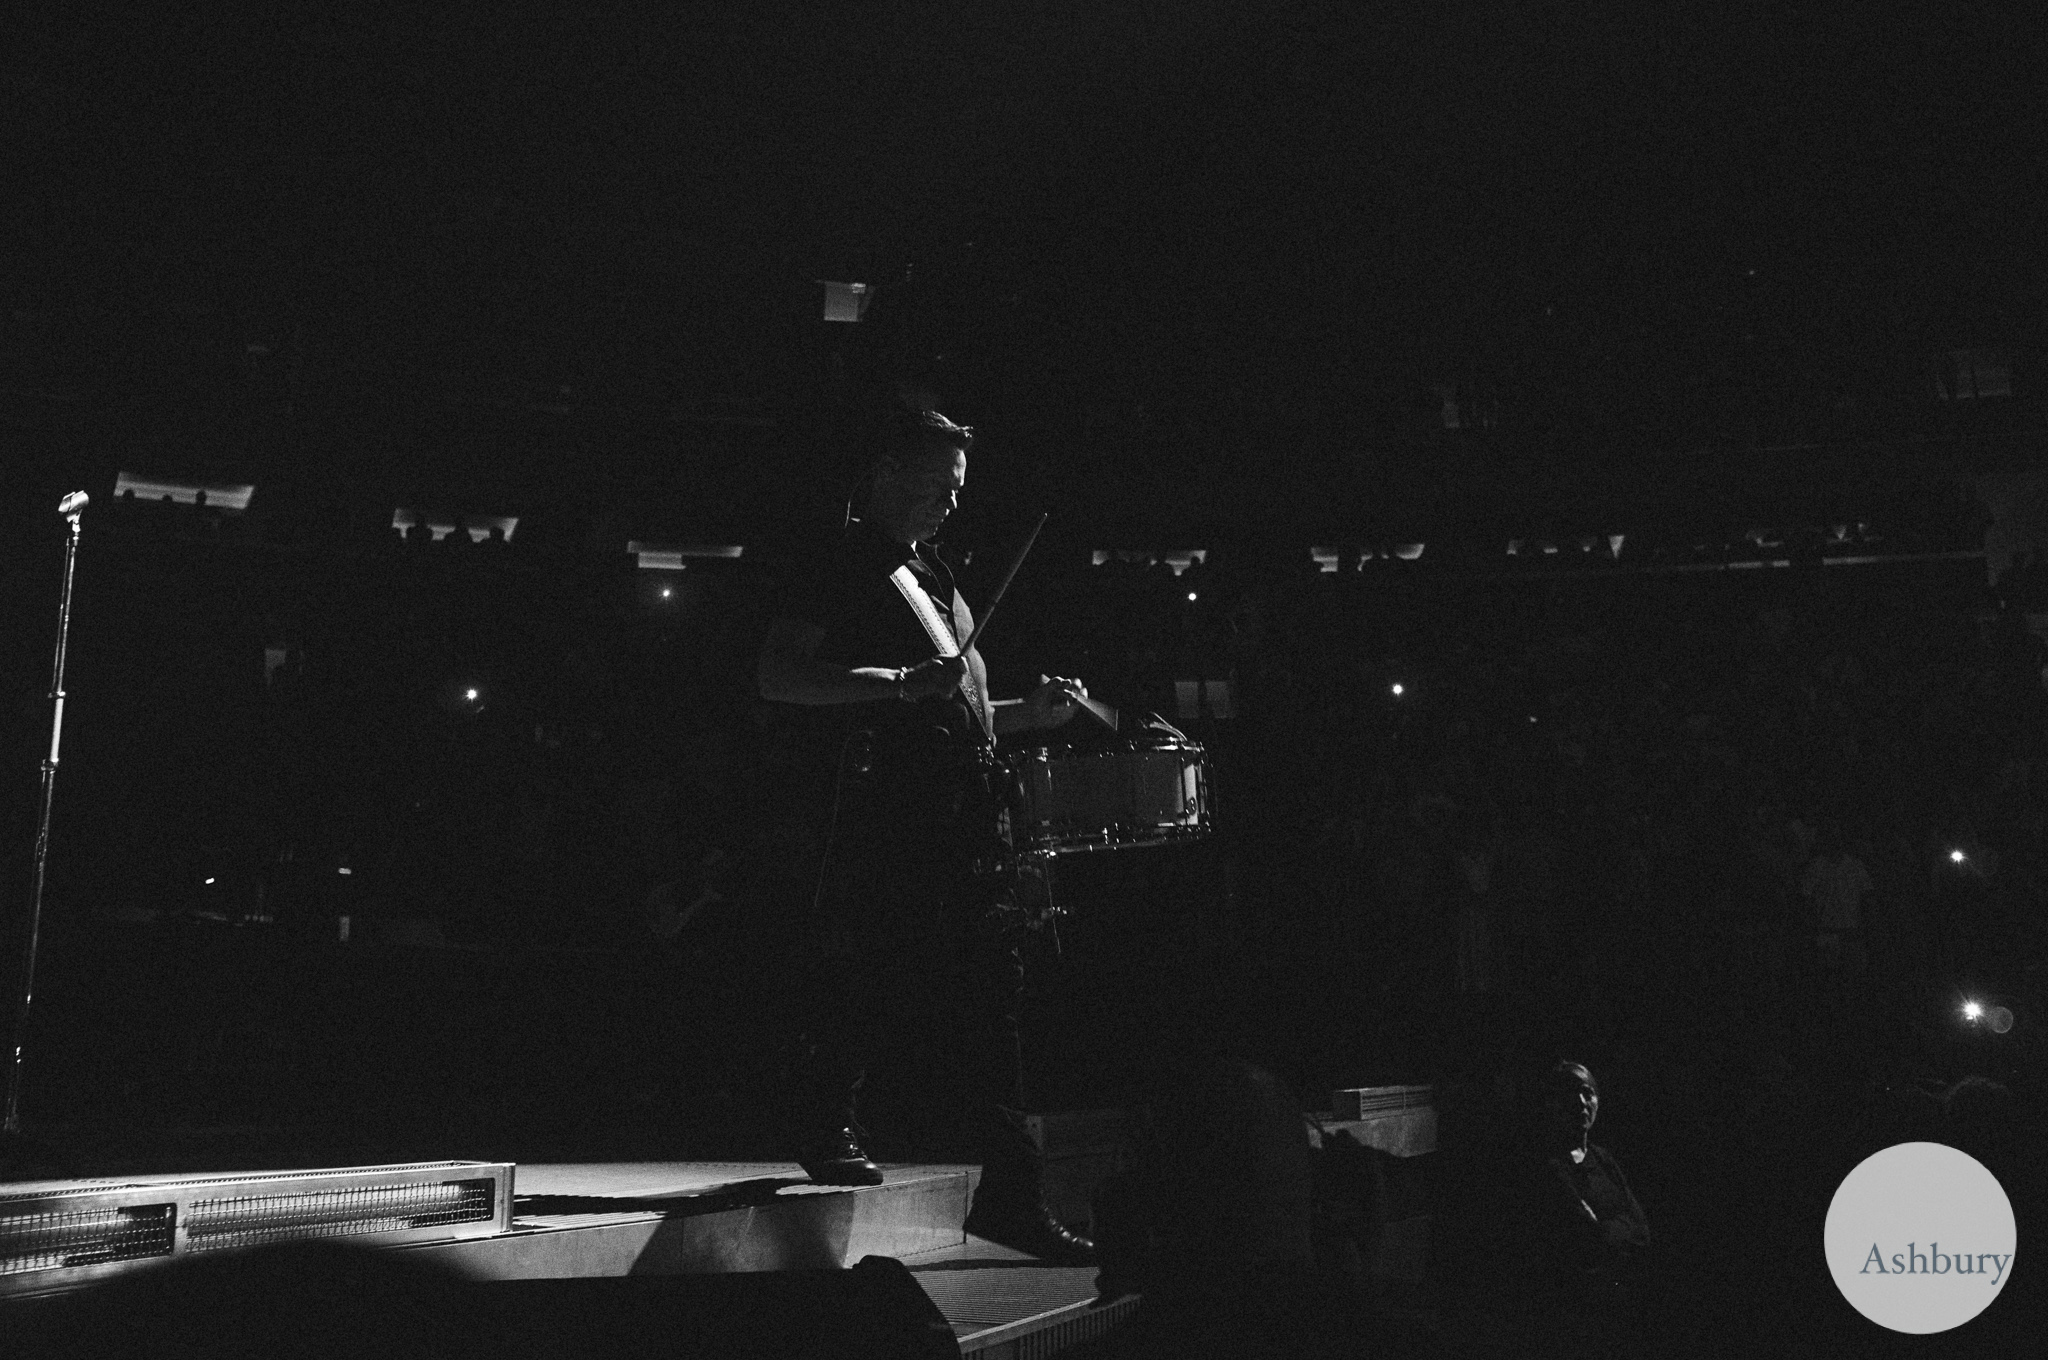 the edge of U2 u2ie tour MSG 07/19 kodak tri-x 400 @ 1600 c